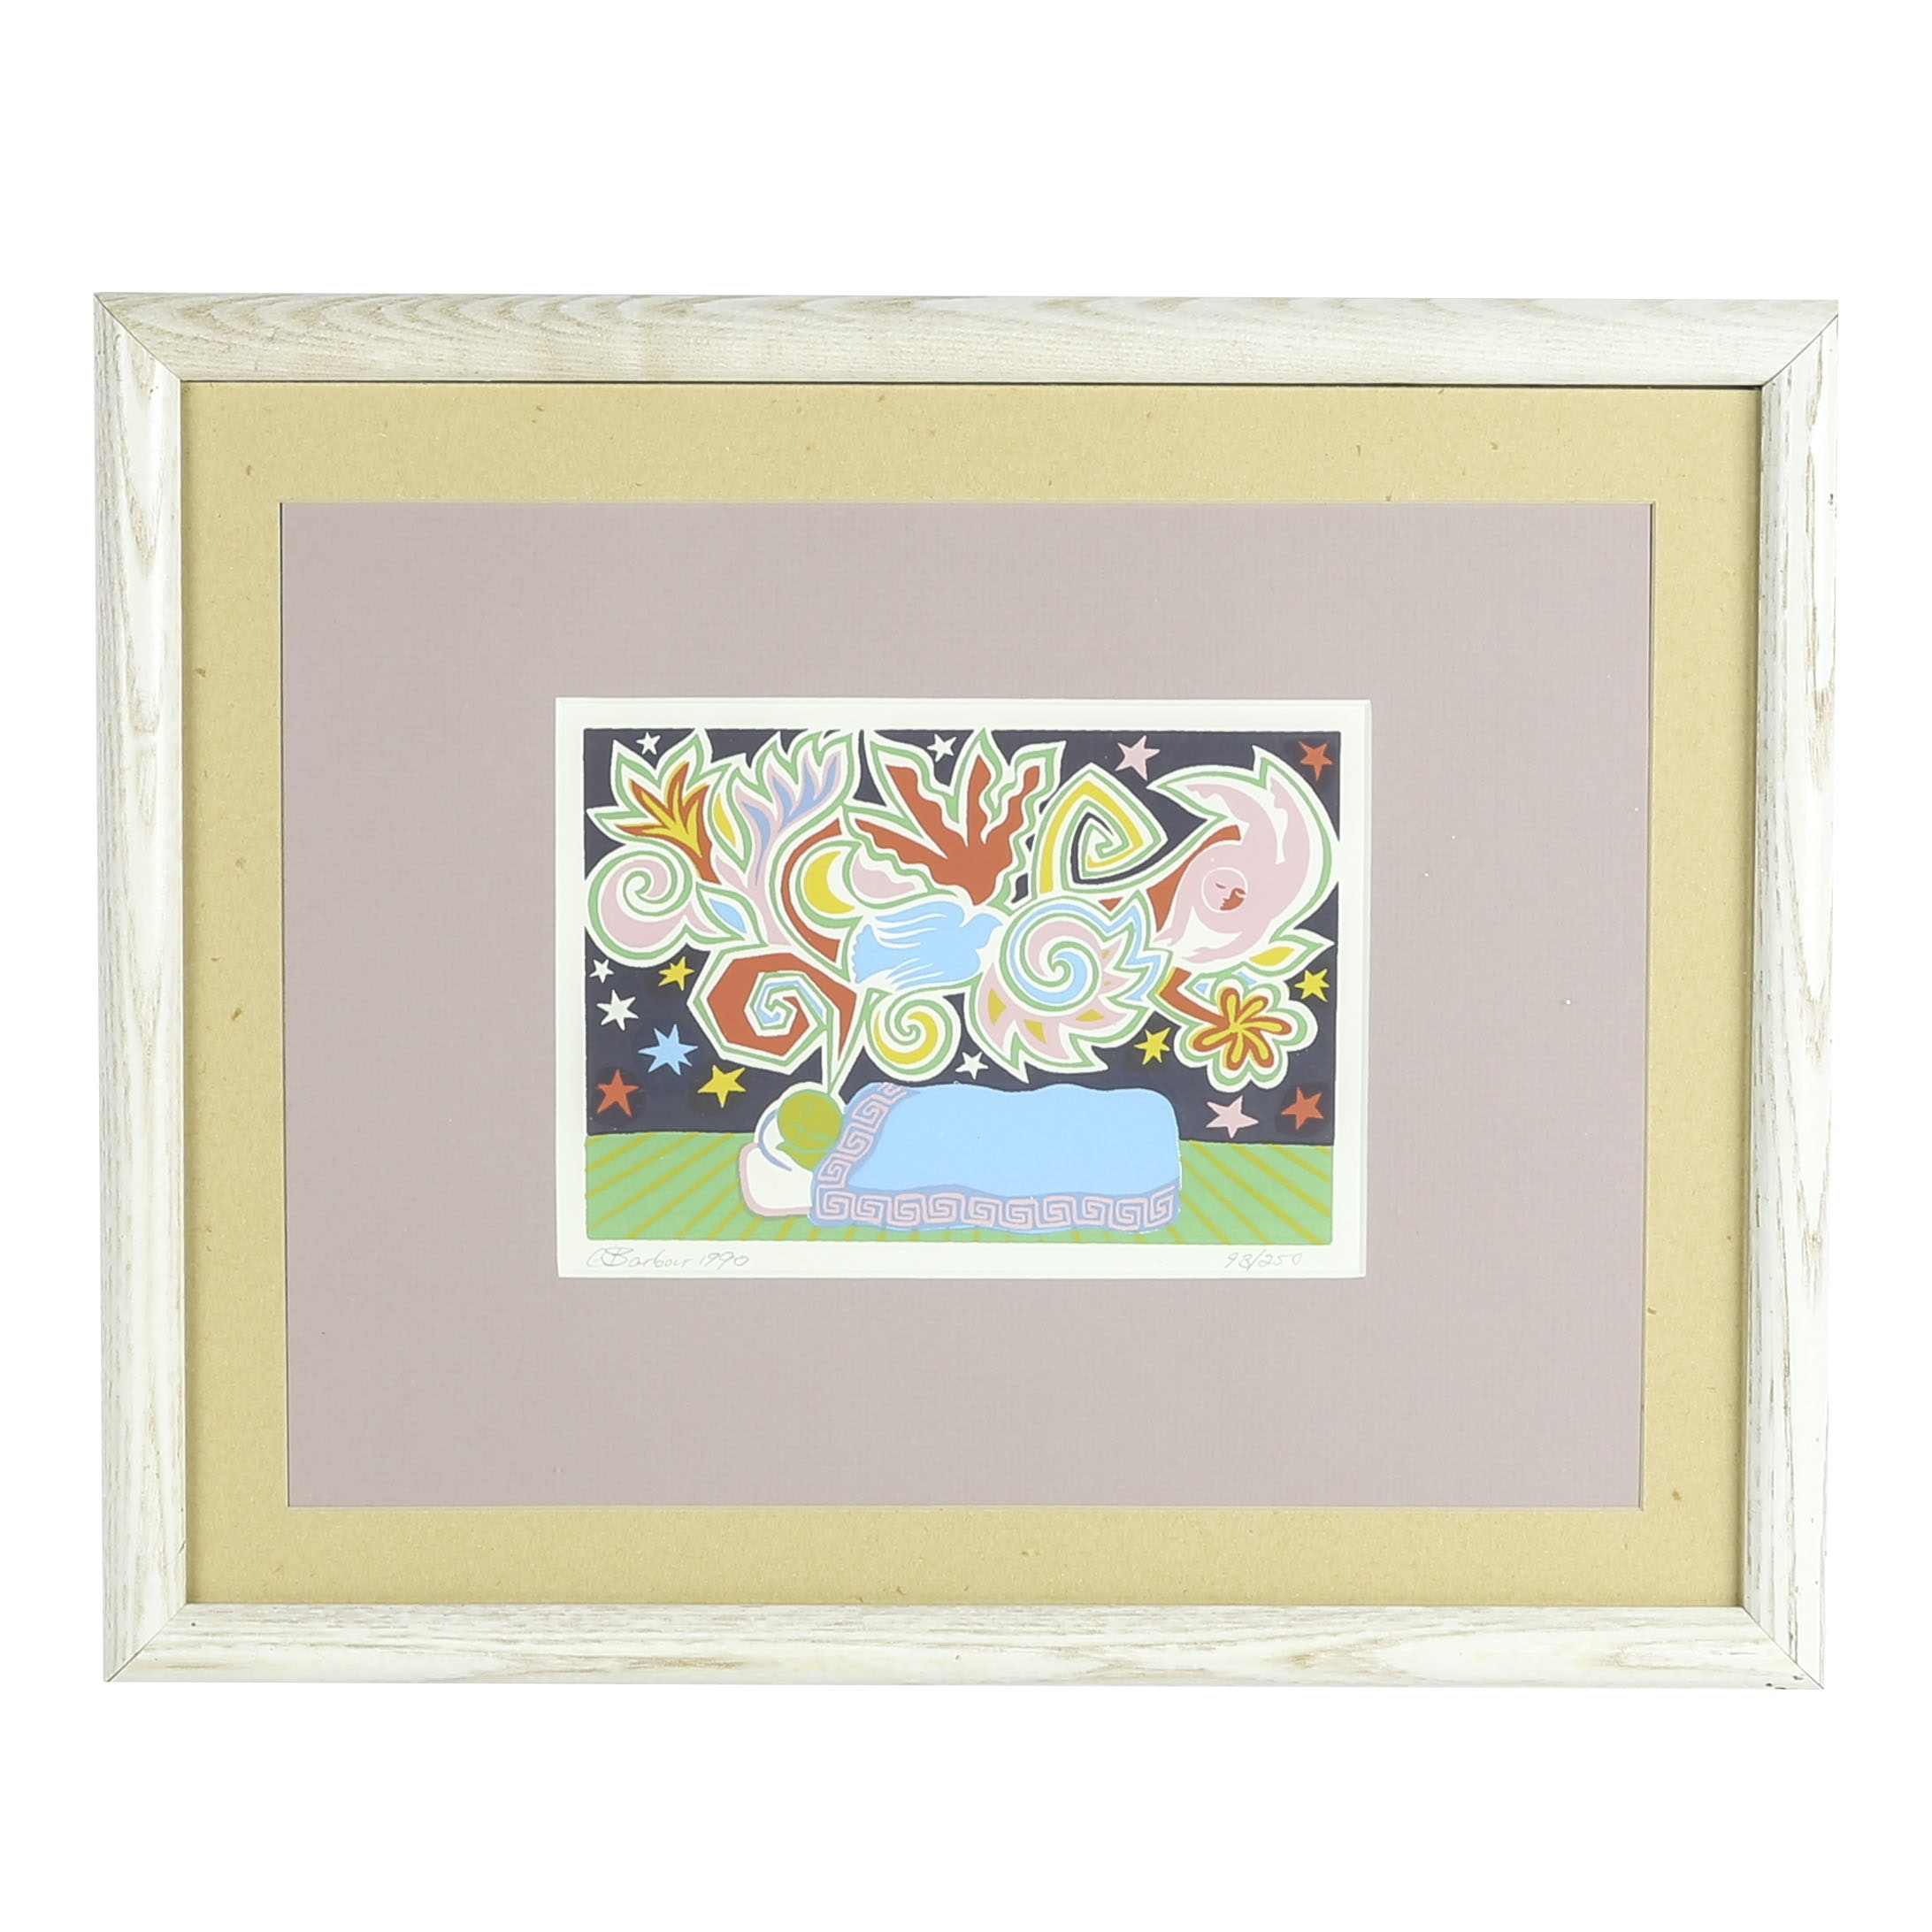 C. Barbour Limited Edition Serigraph on Paper